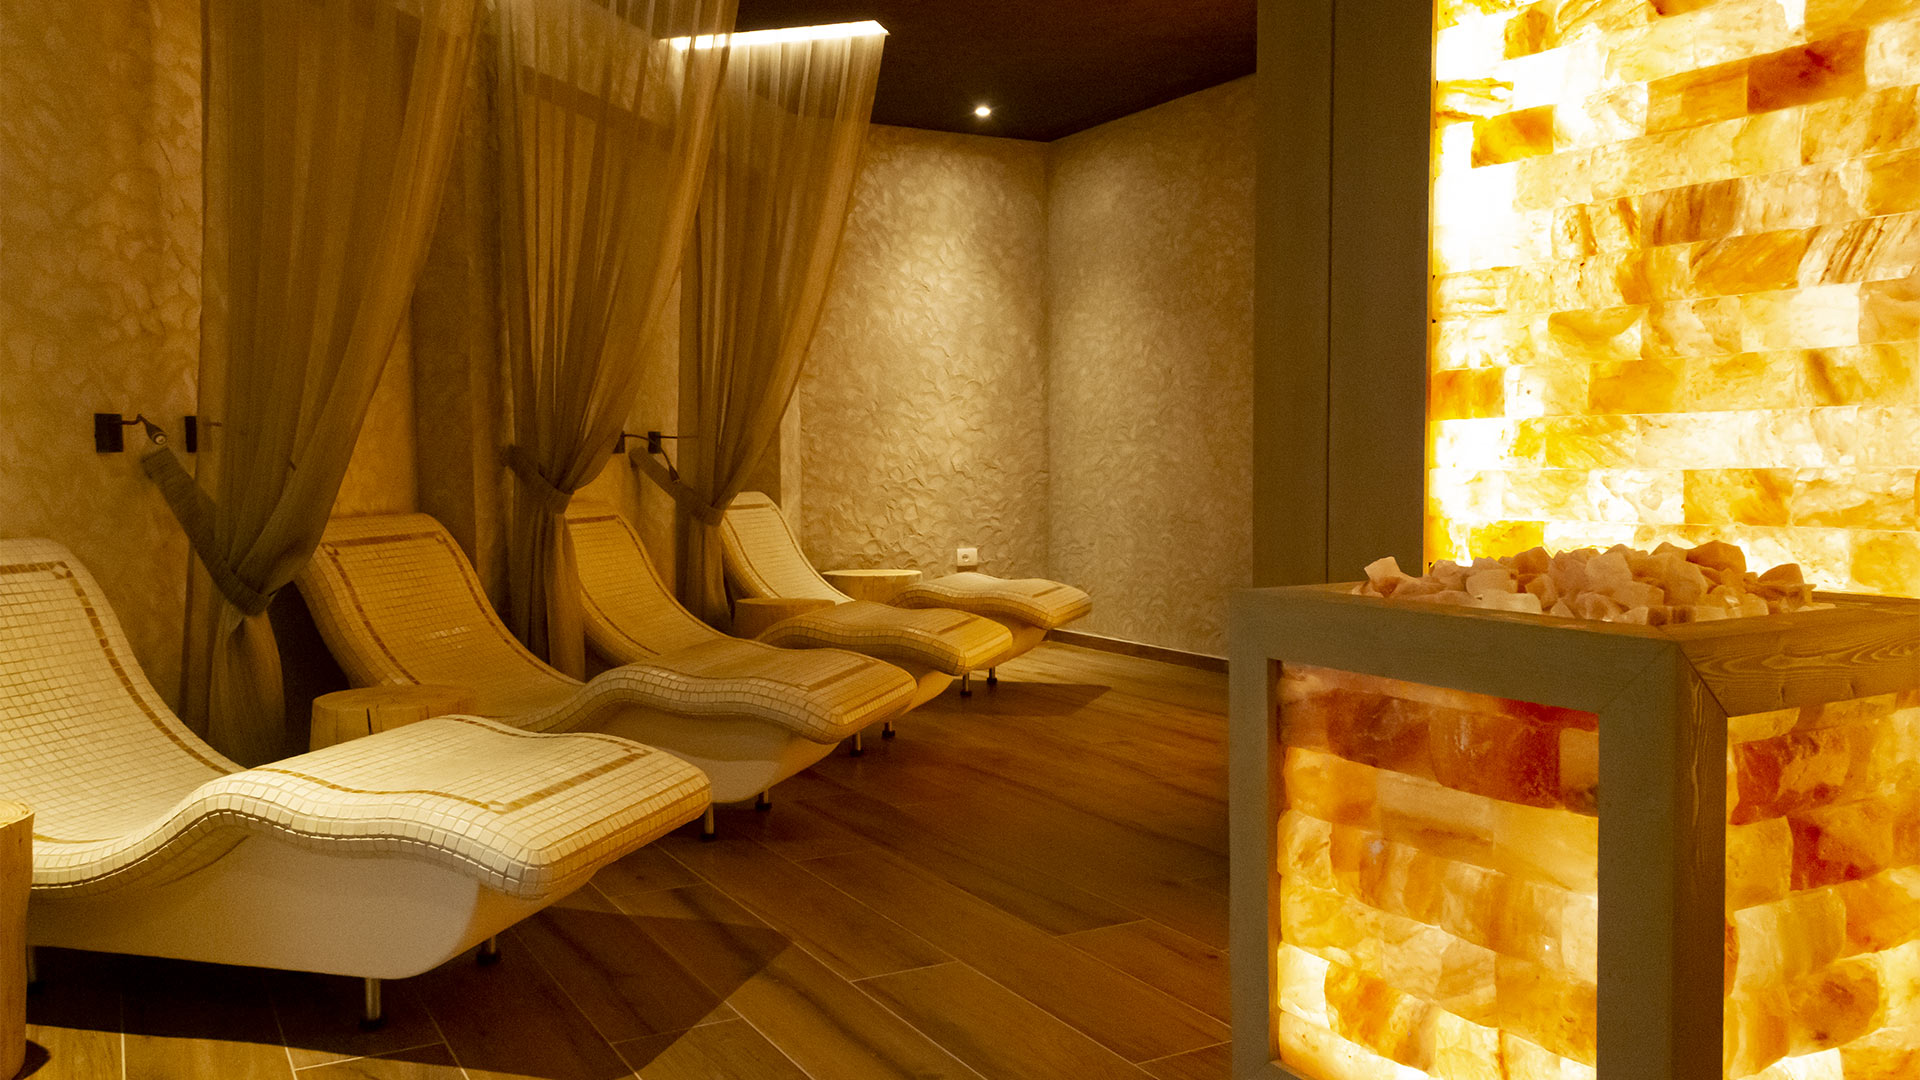 The new Spa at the Hotel Tritone, an exciting journey